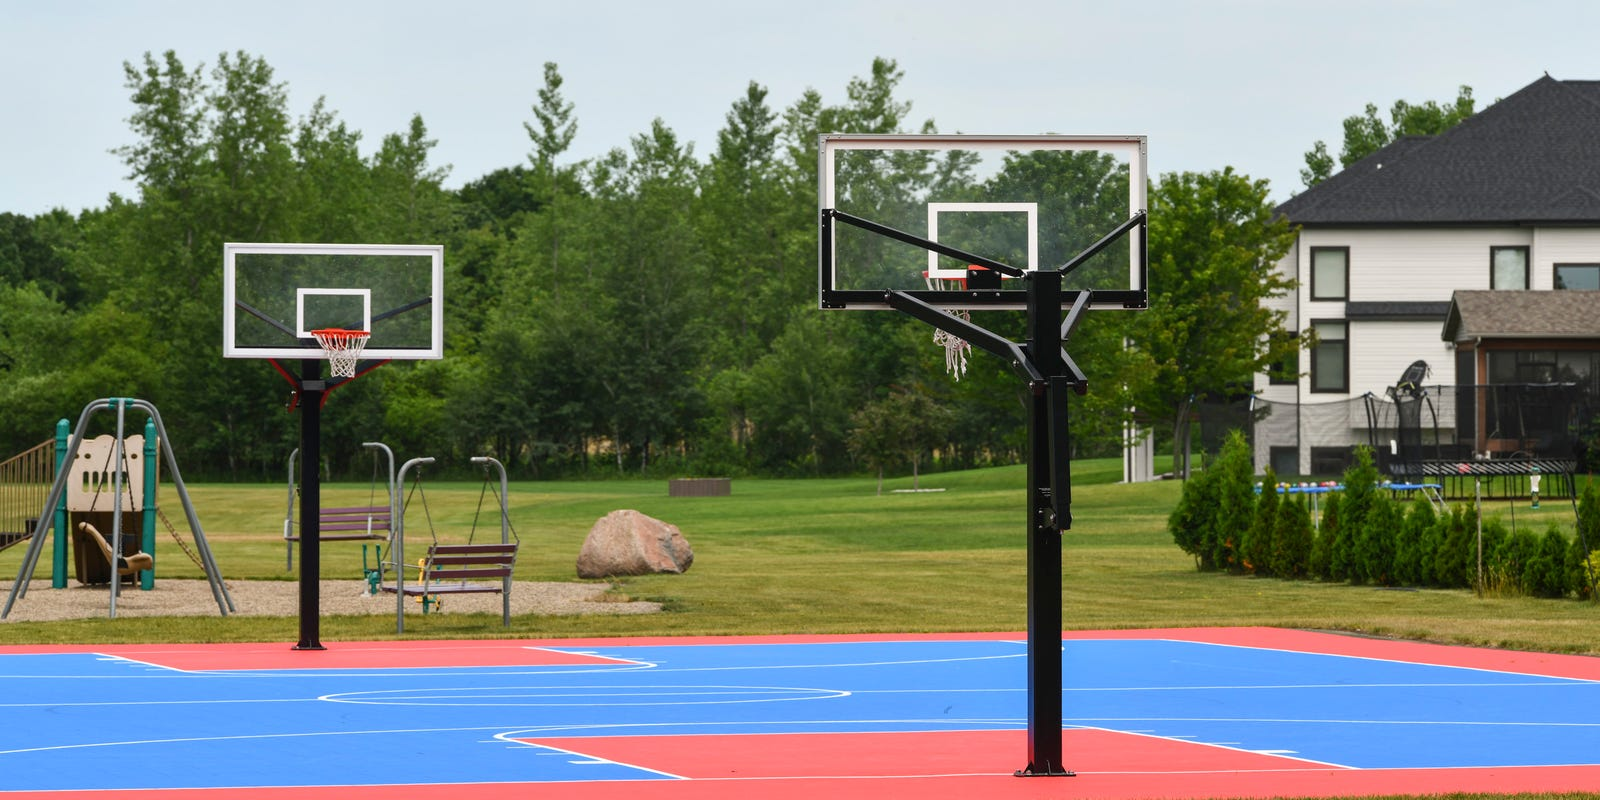 Basketball Court Spurs Debate Over Parks Race And Noise In Sartell